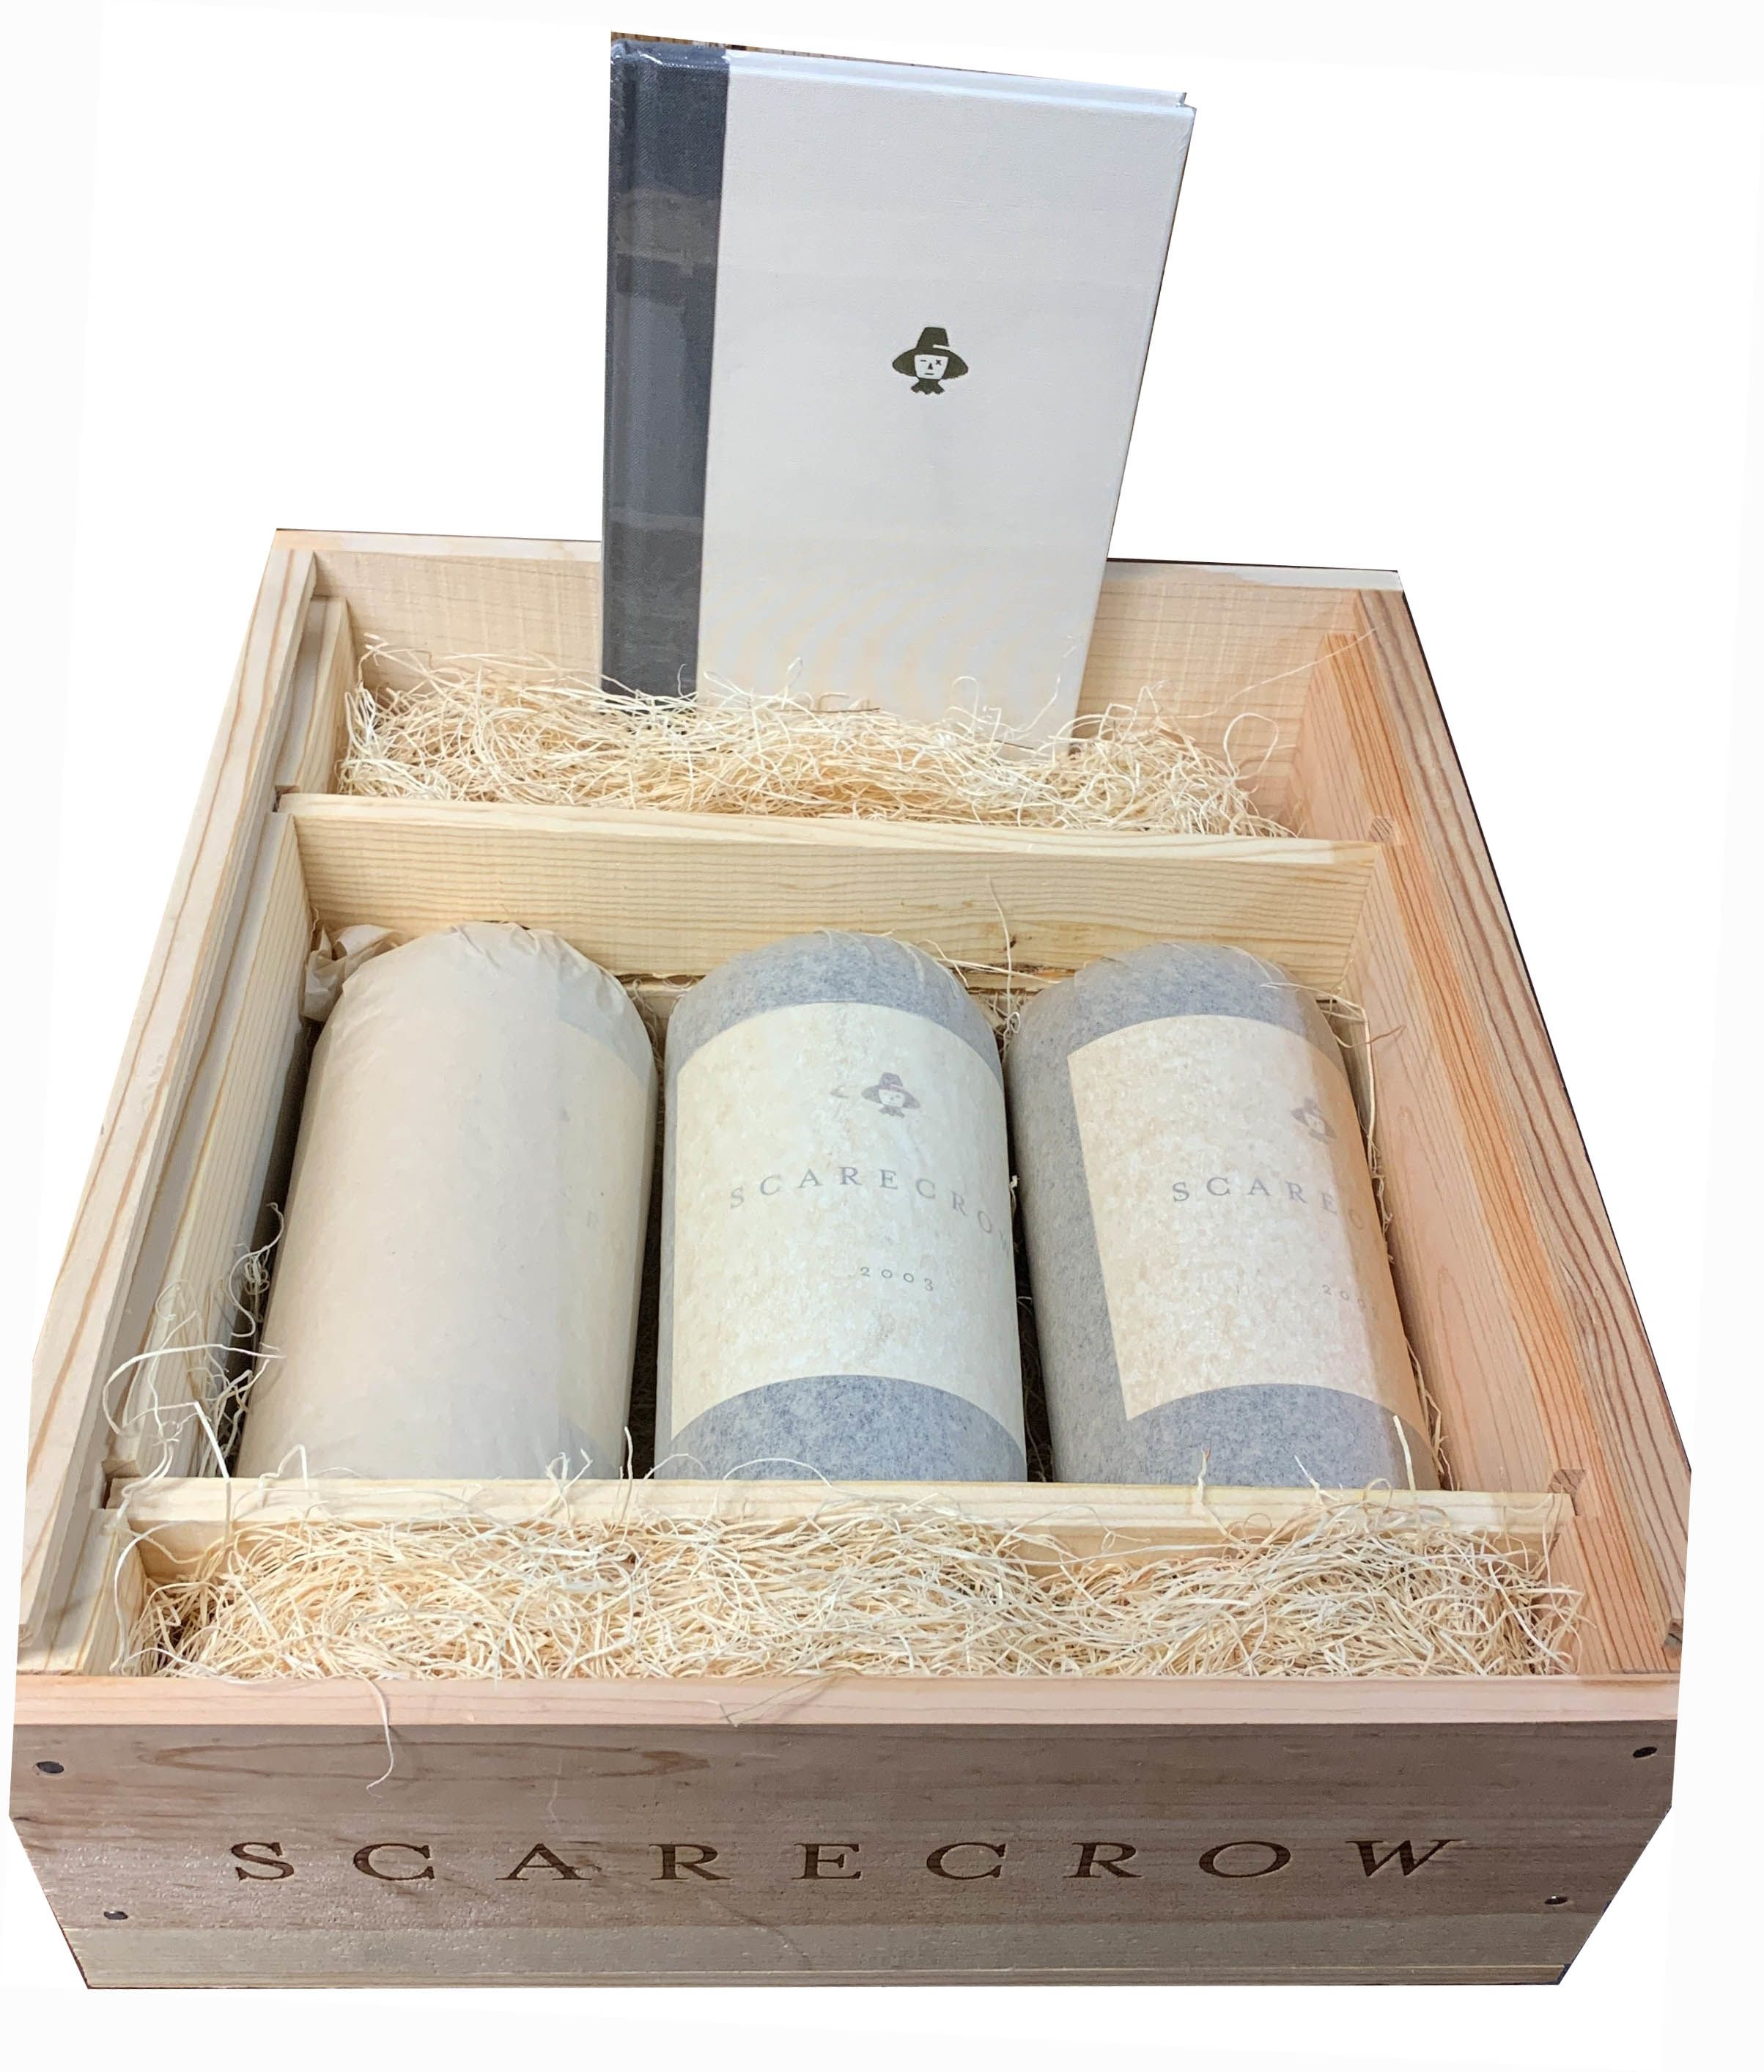 Scarecrow Cabernet Sauvignon (3 bottle OWC - Inaugural Vintage) 2003  Gift Product Image